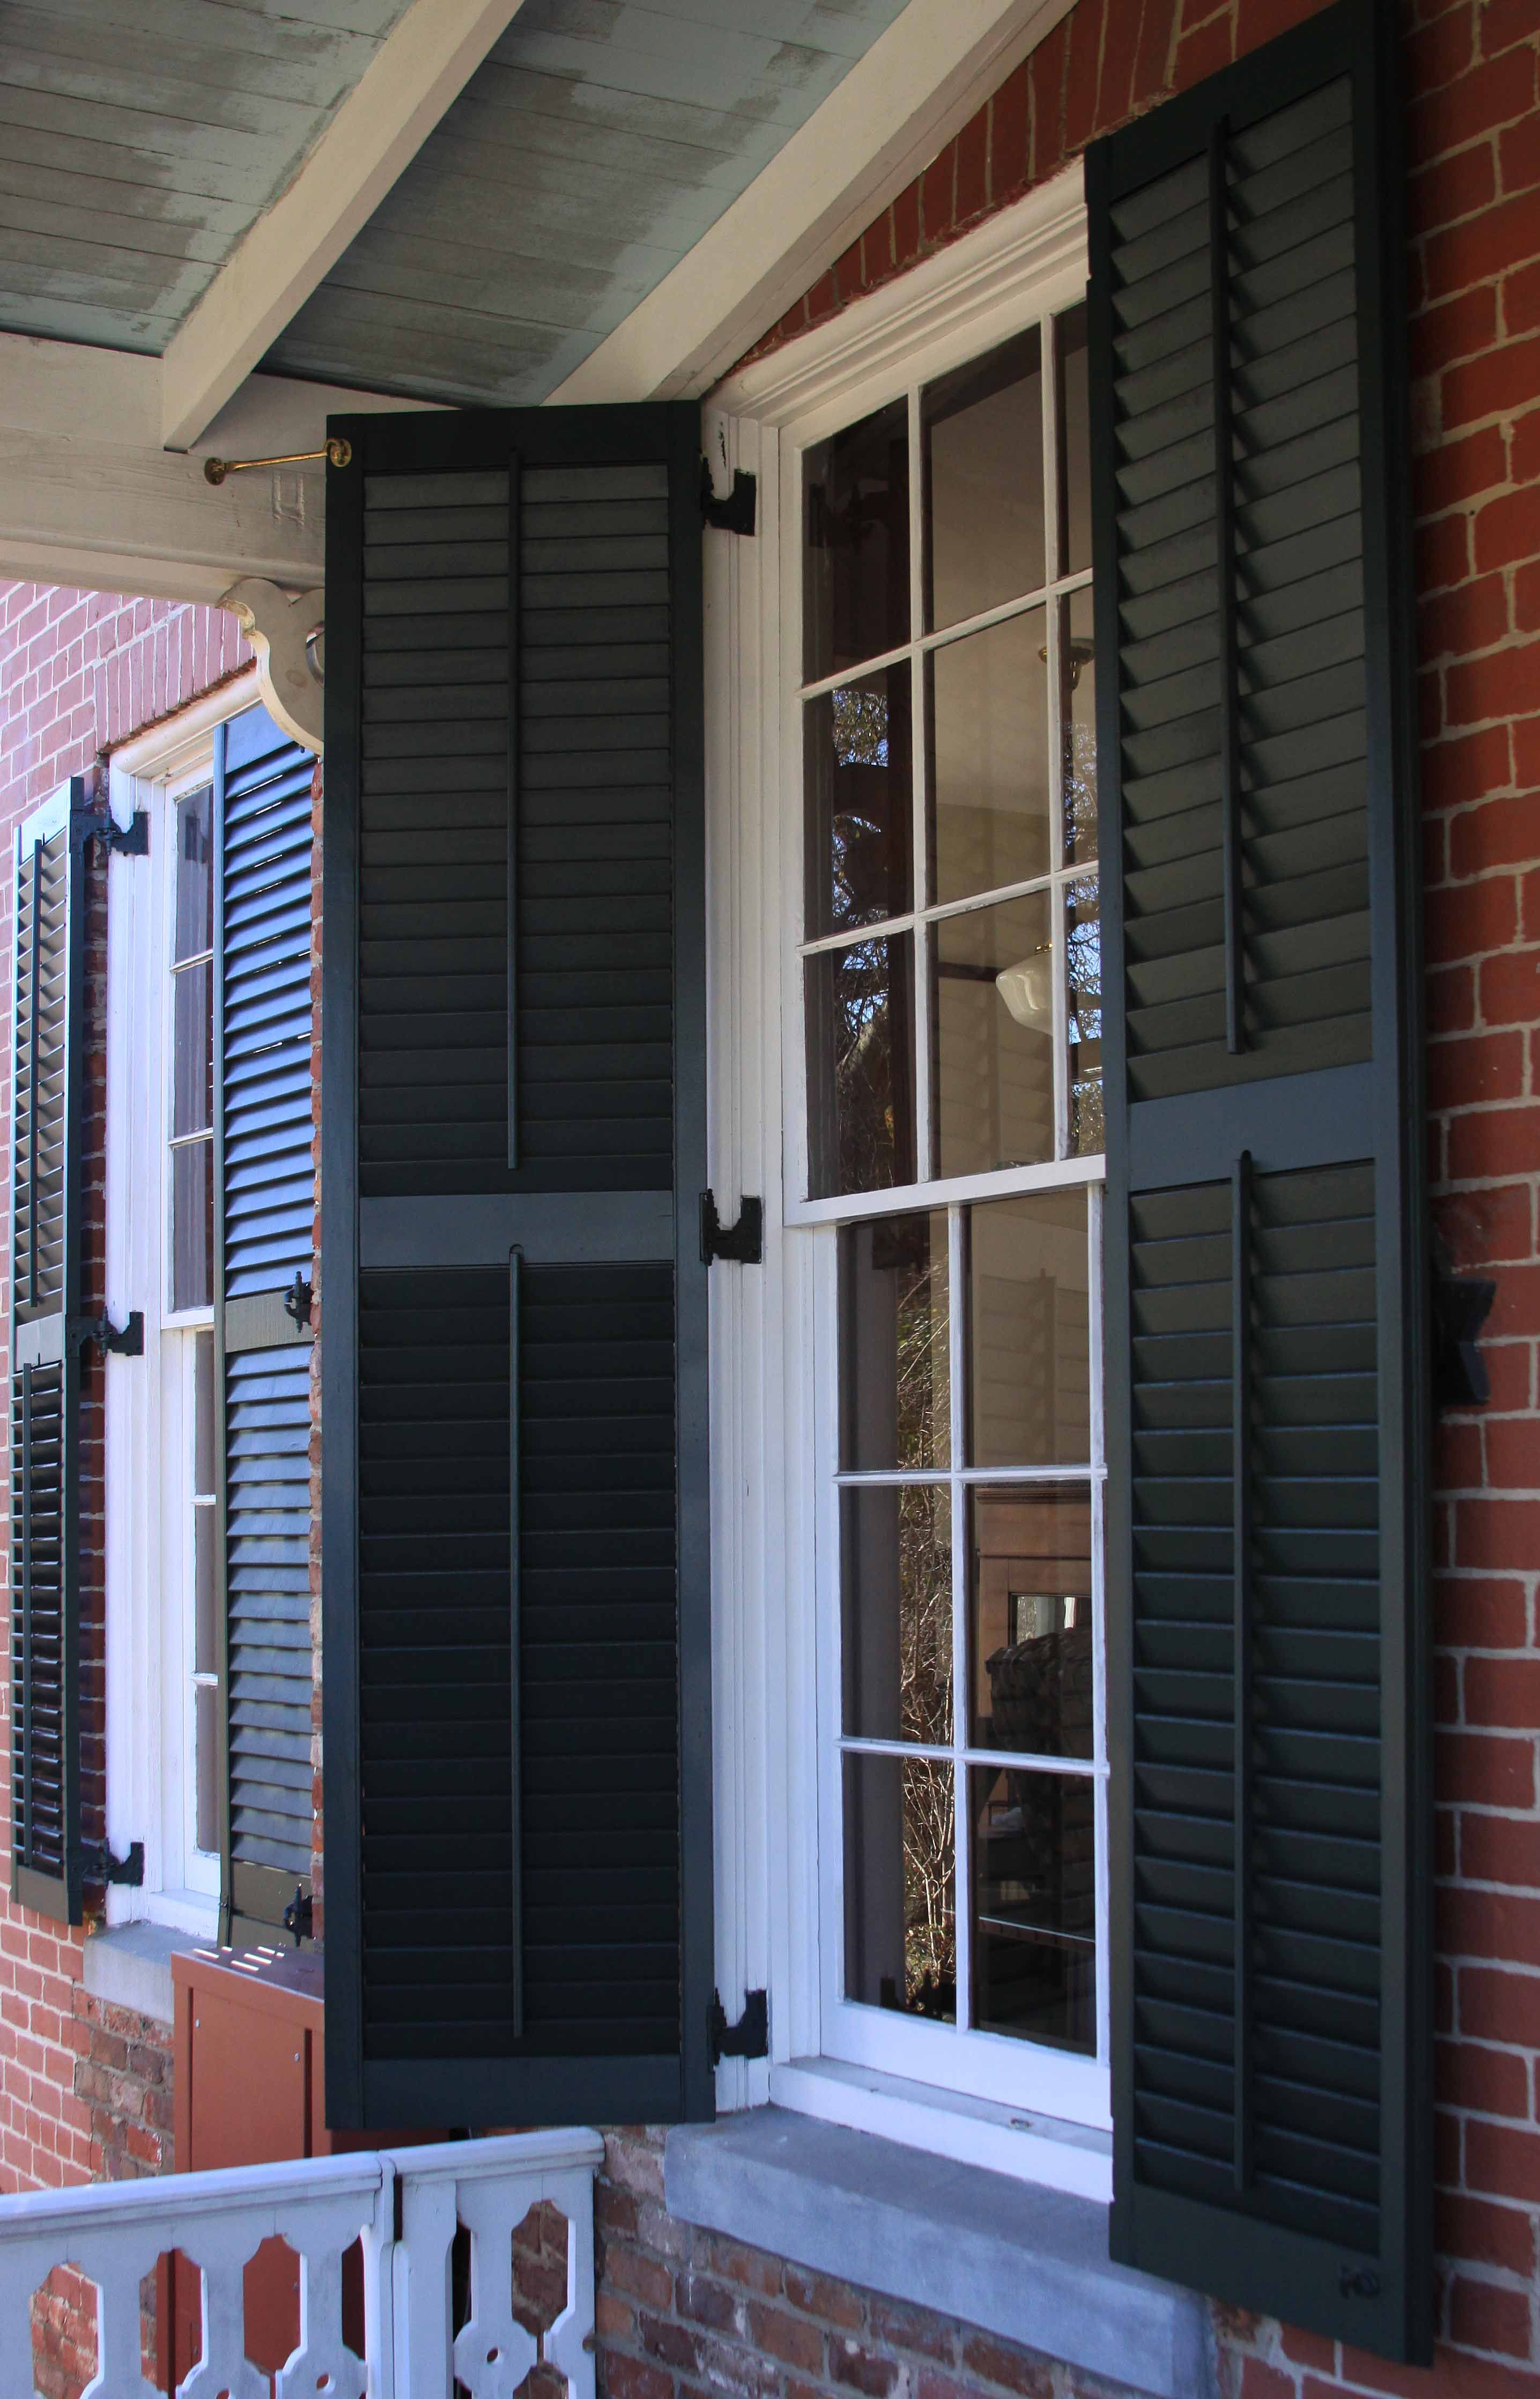 Exterior Moveable Louver Shutters Exterior Blinds Shutters Exterior Shutters